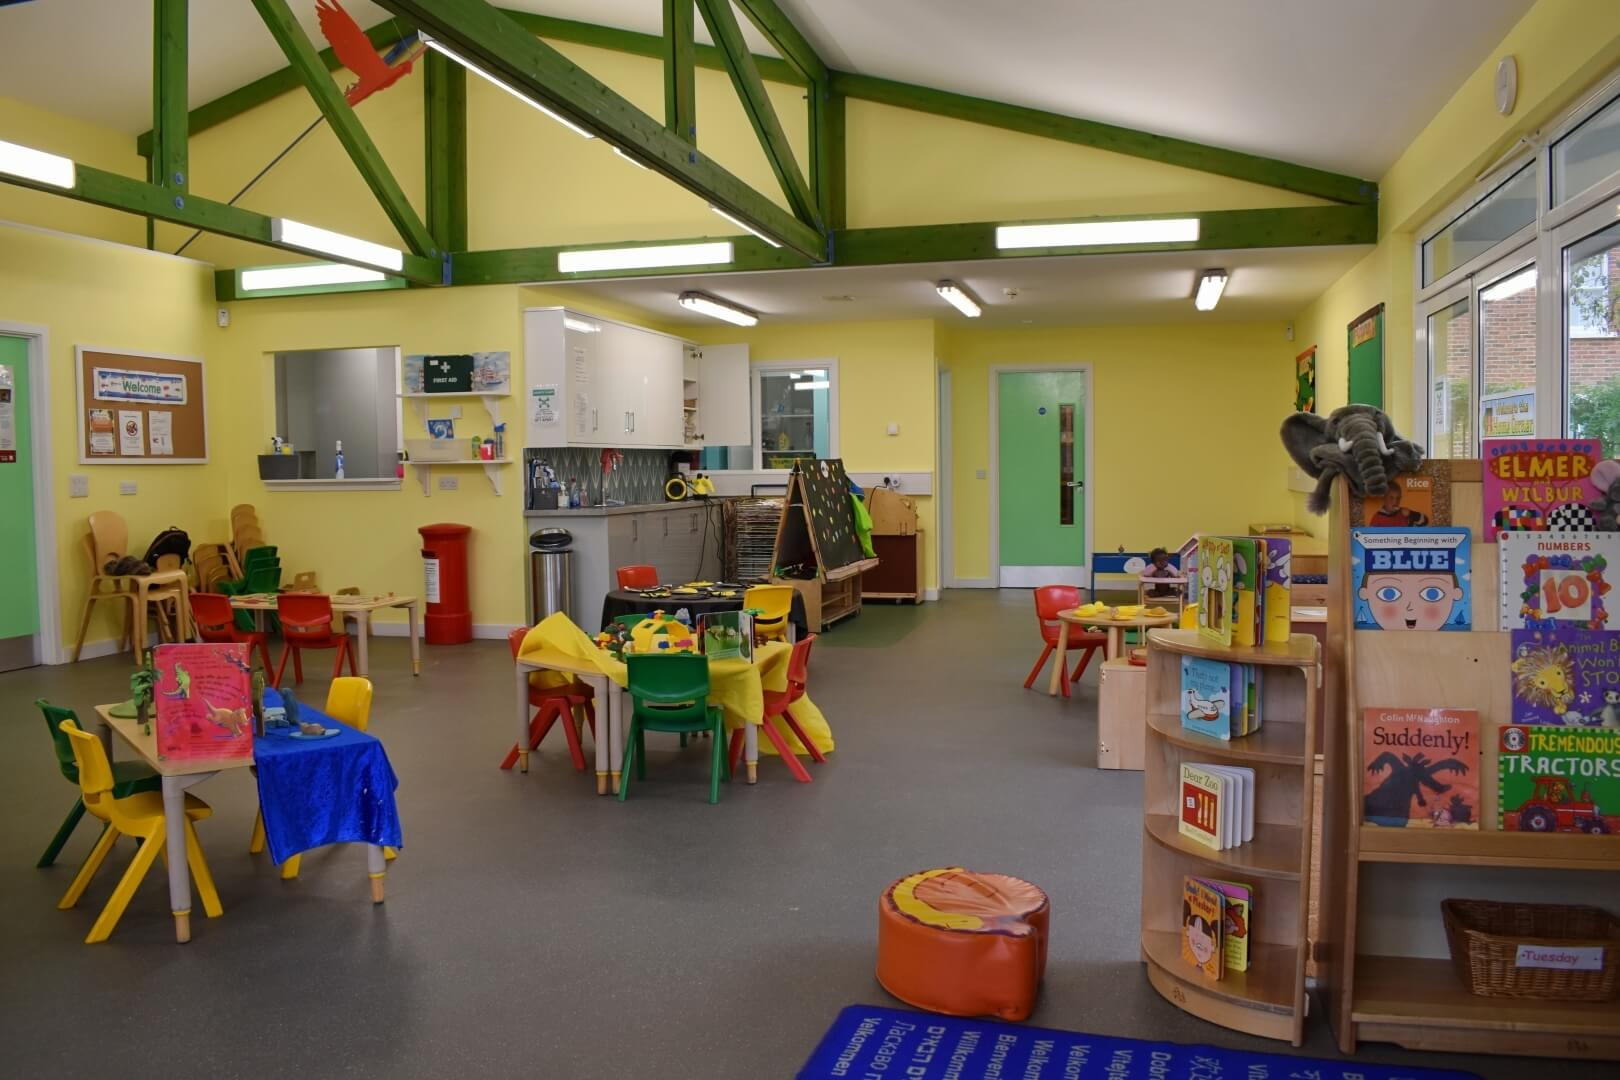 Rays Playhouse Childrens Centre Sands End Fulham (23)